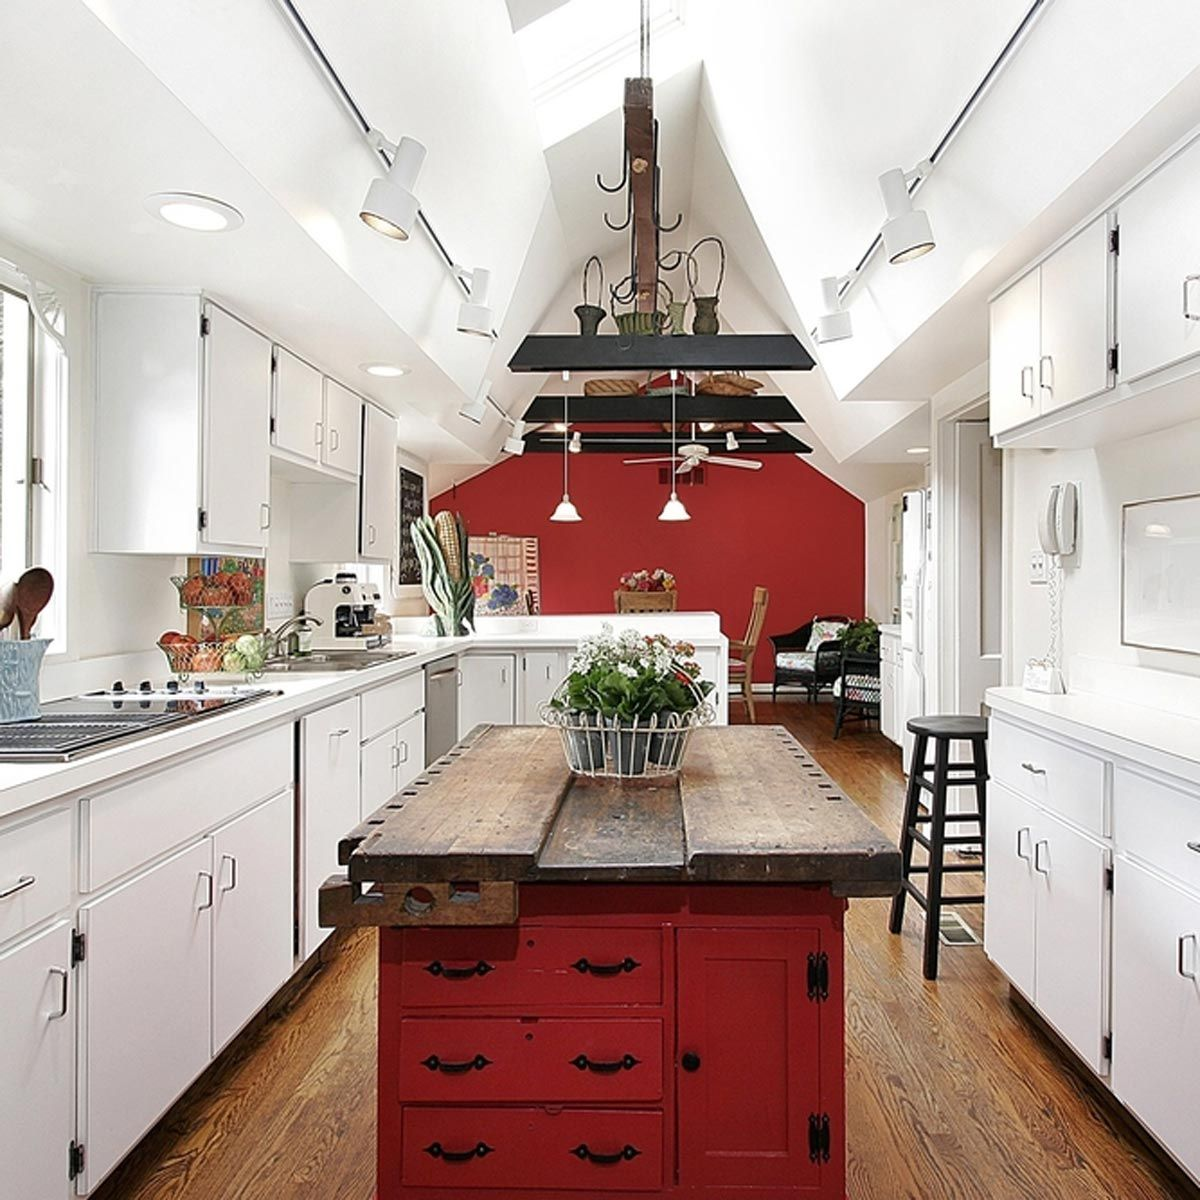 Contrast Colors Red Kitchen Walls Kitchen Cabinet Design Kitchen Inspirations